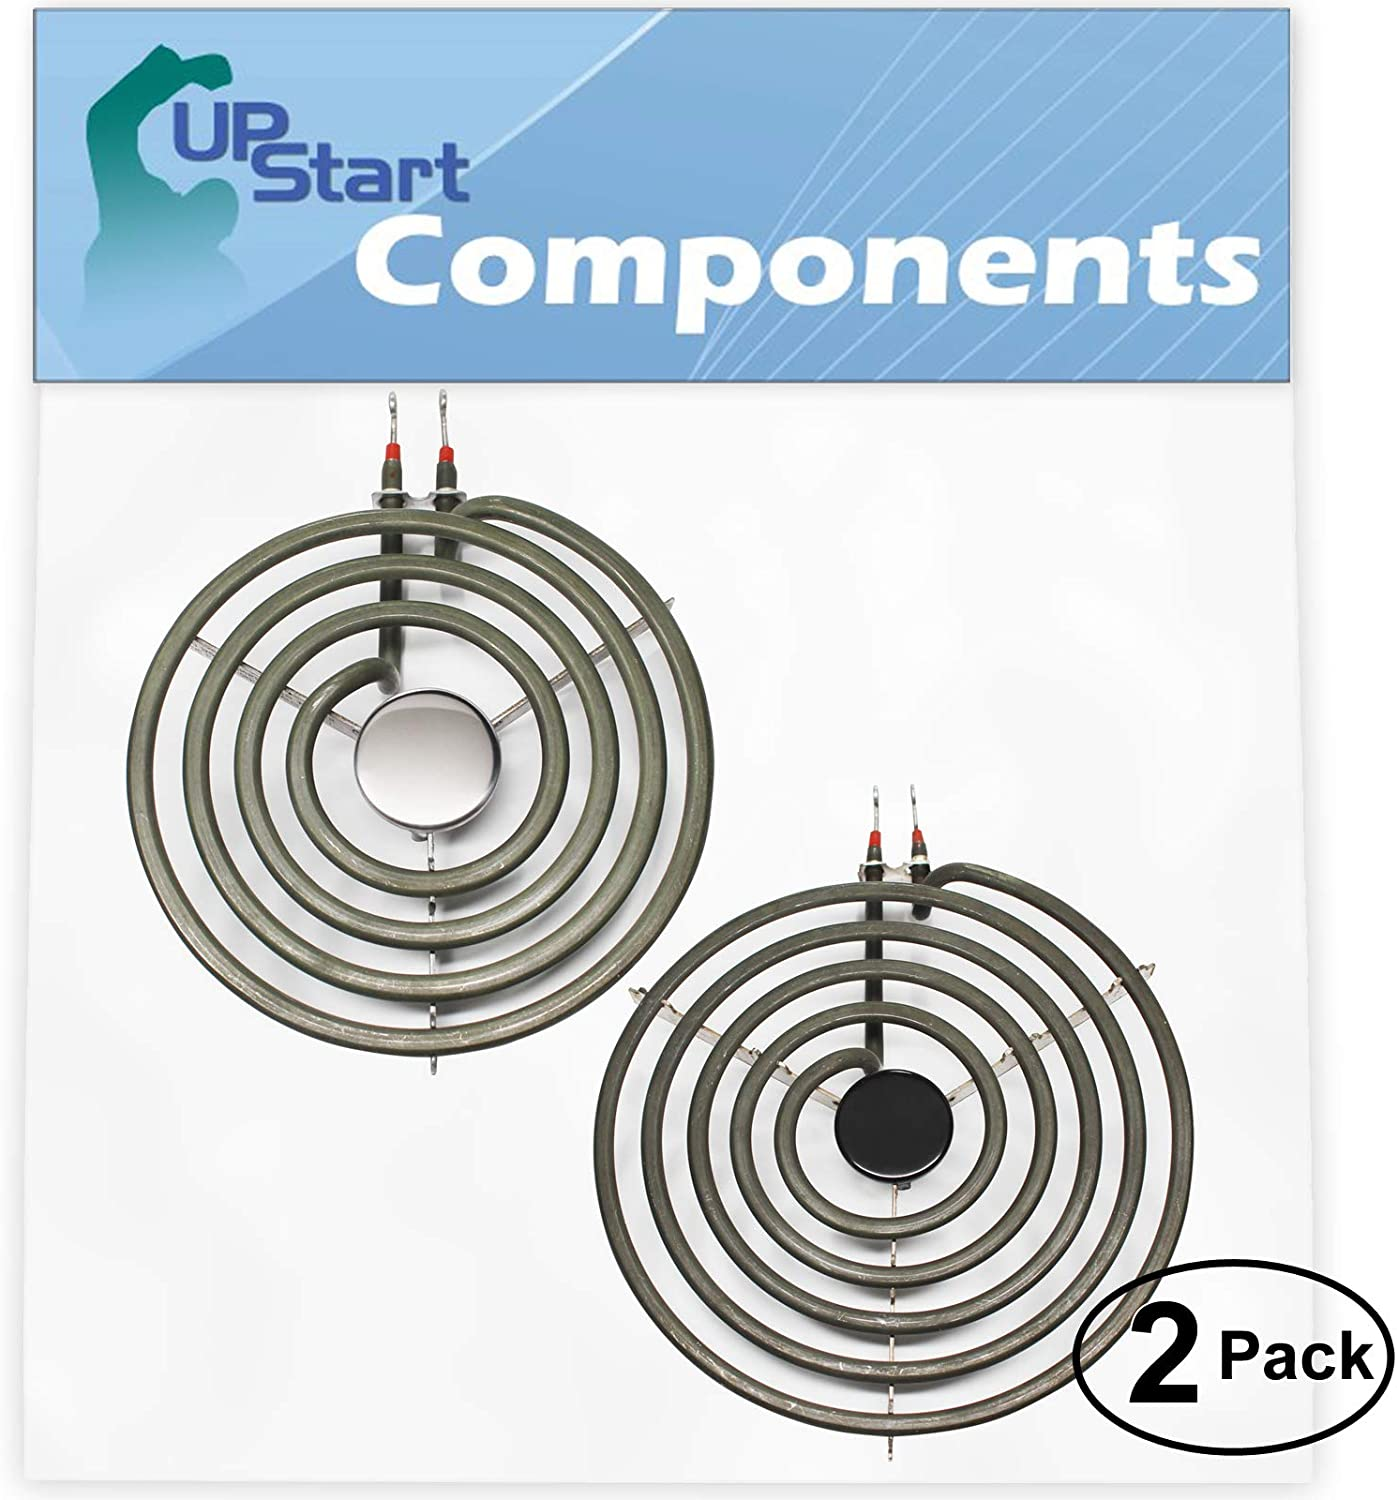 2-Pack Replacement for Frigidaire FEF450BWE 8 inch 5 Turns & 6 inch 4 Turns Surface Burner Elements - Compatible with Frigidaire 316442301 & 316439801 Heating Element for Range Stove & Cooktop